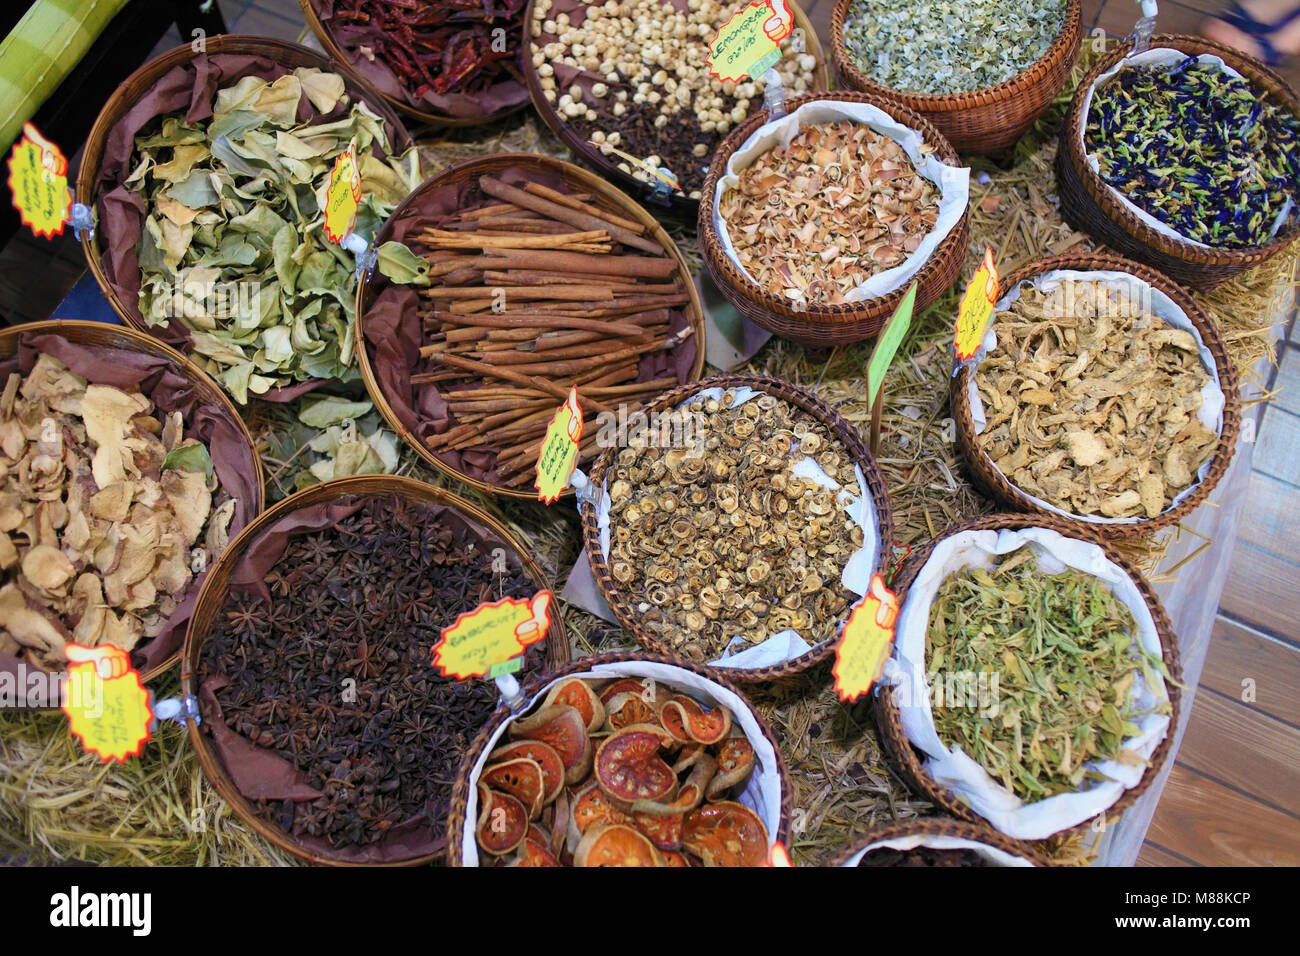 Thailand; Chiang Mai, herbs and spices, shop, - Stock Image